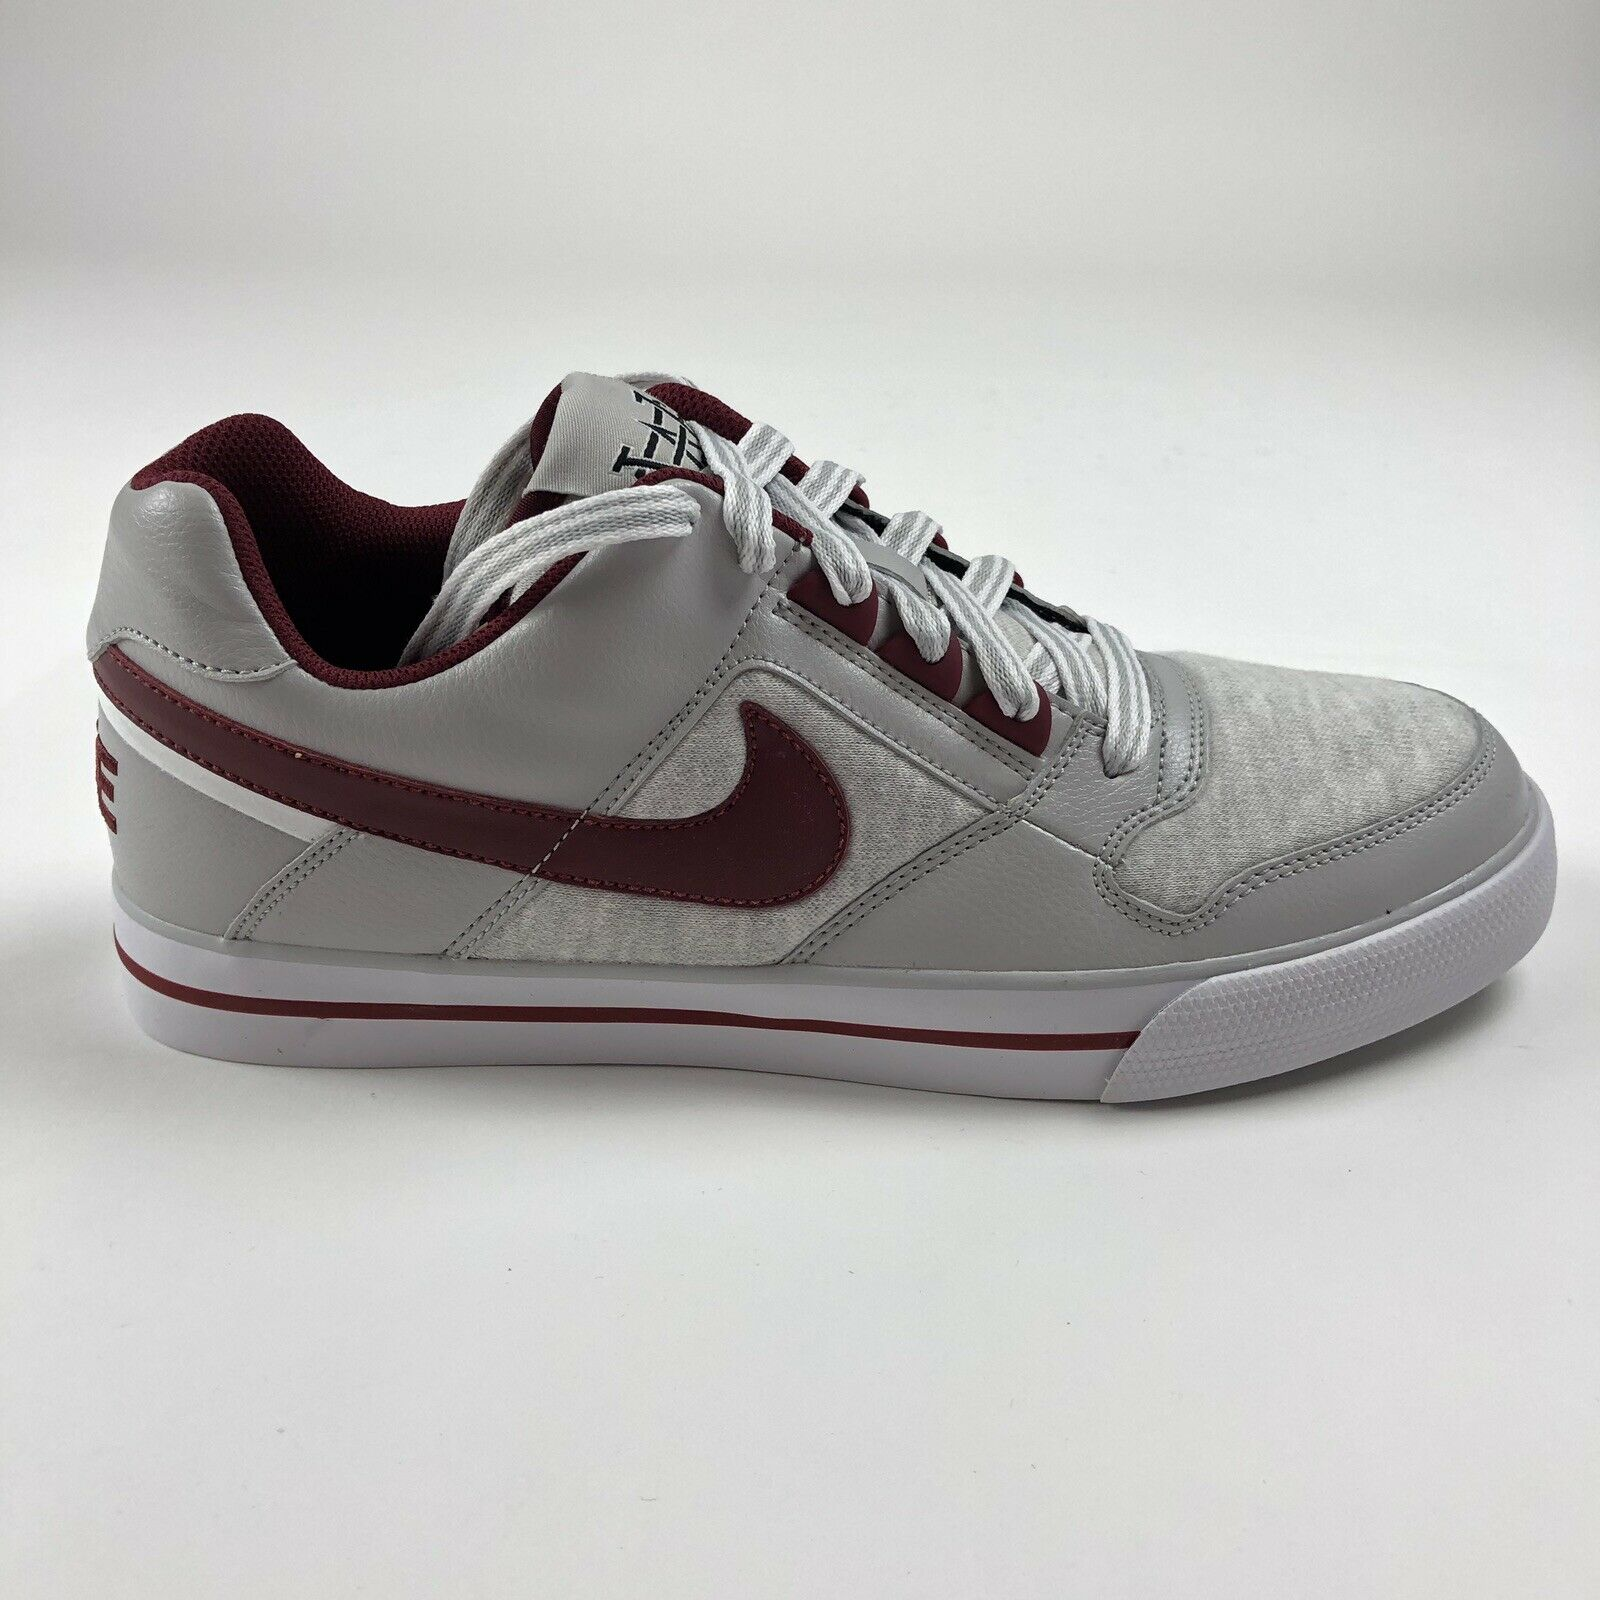 Nike Delta Force AC Sz 10.5 Low Top shoes White Team Red Neutral Grey 370543-101